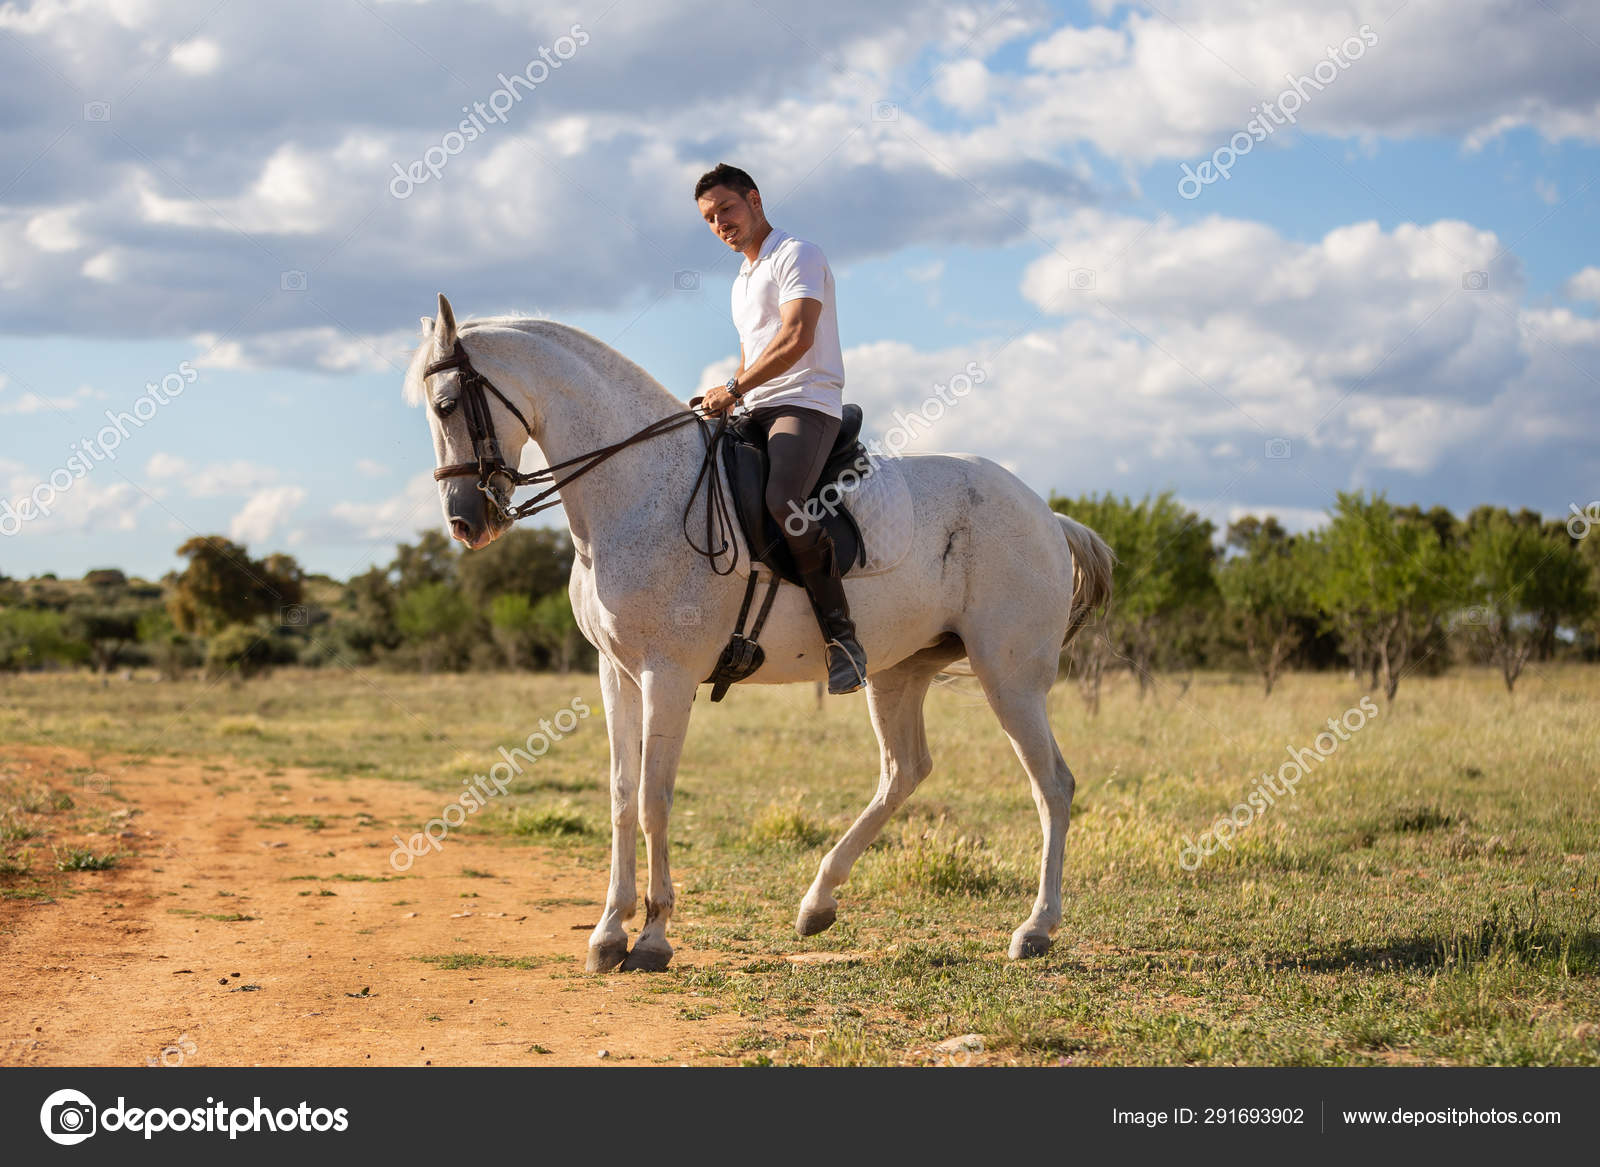 Young Guy Casual Outfit Riding White Horse Meadow Sunny Day Stock Photo C Pablobenii 291693902